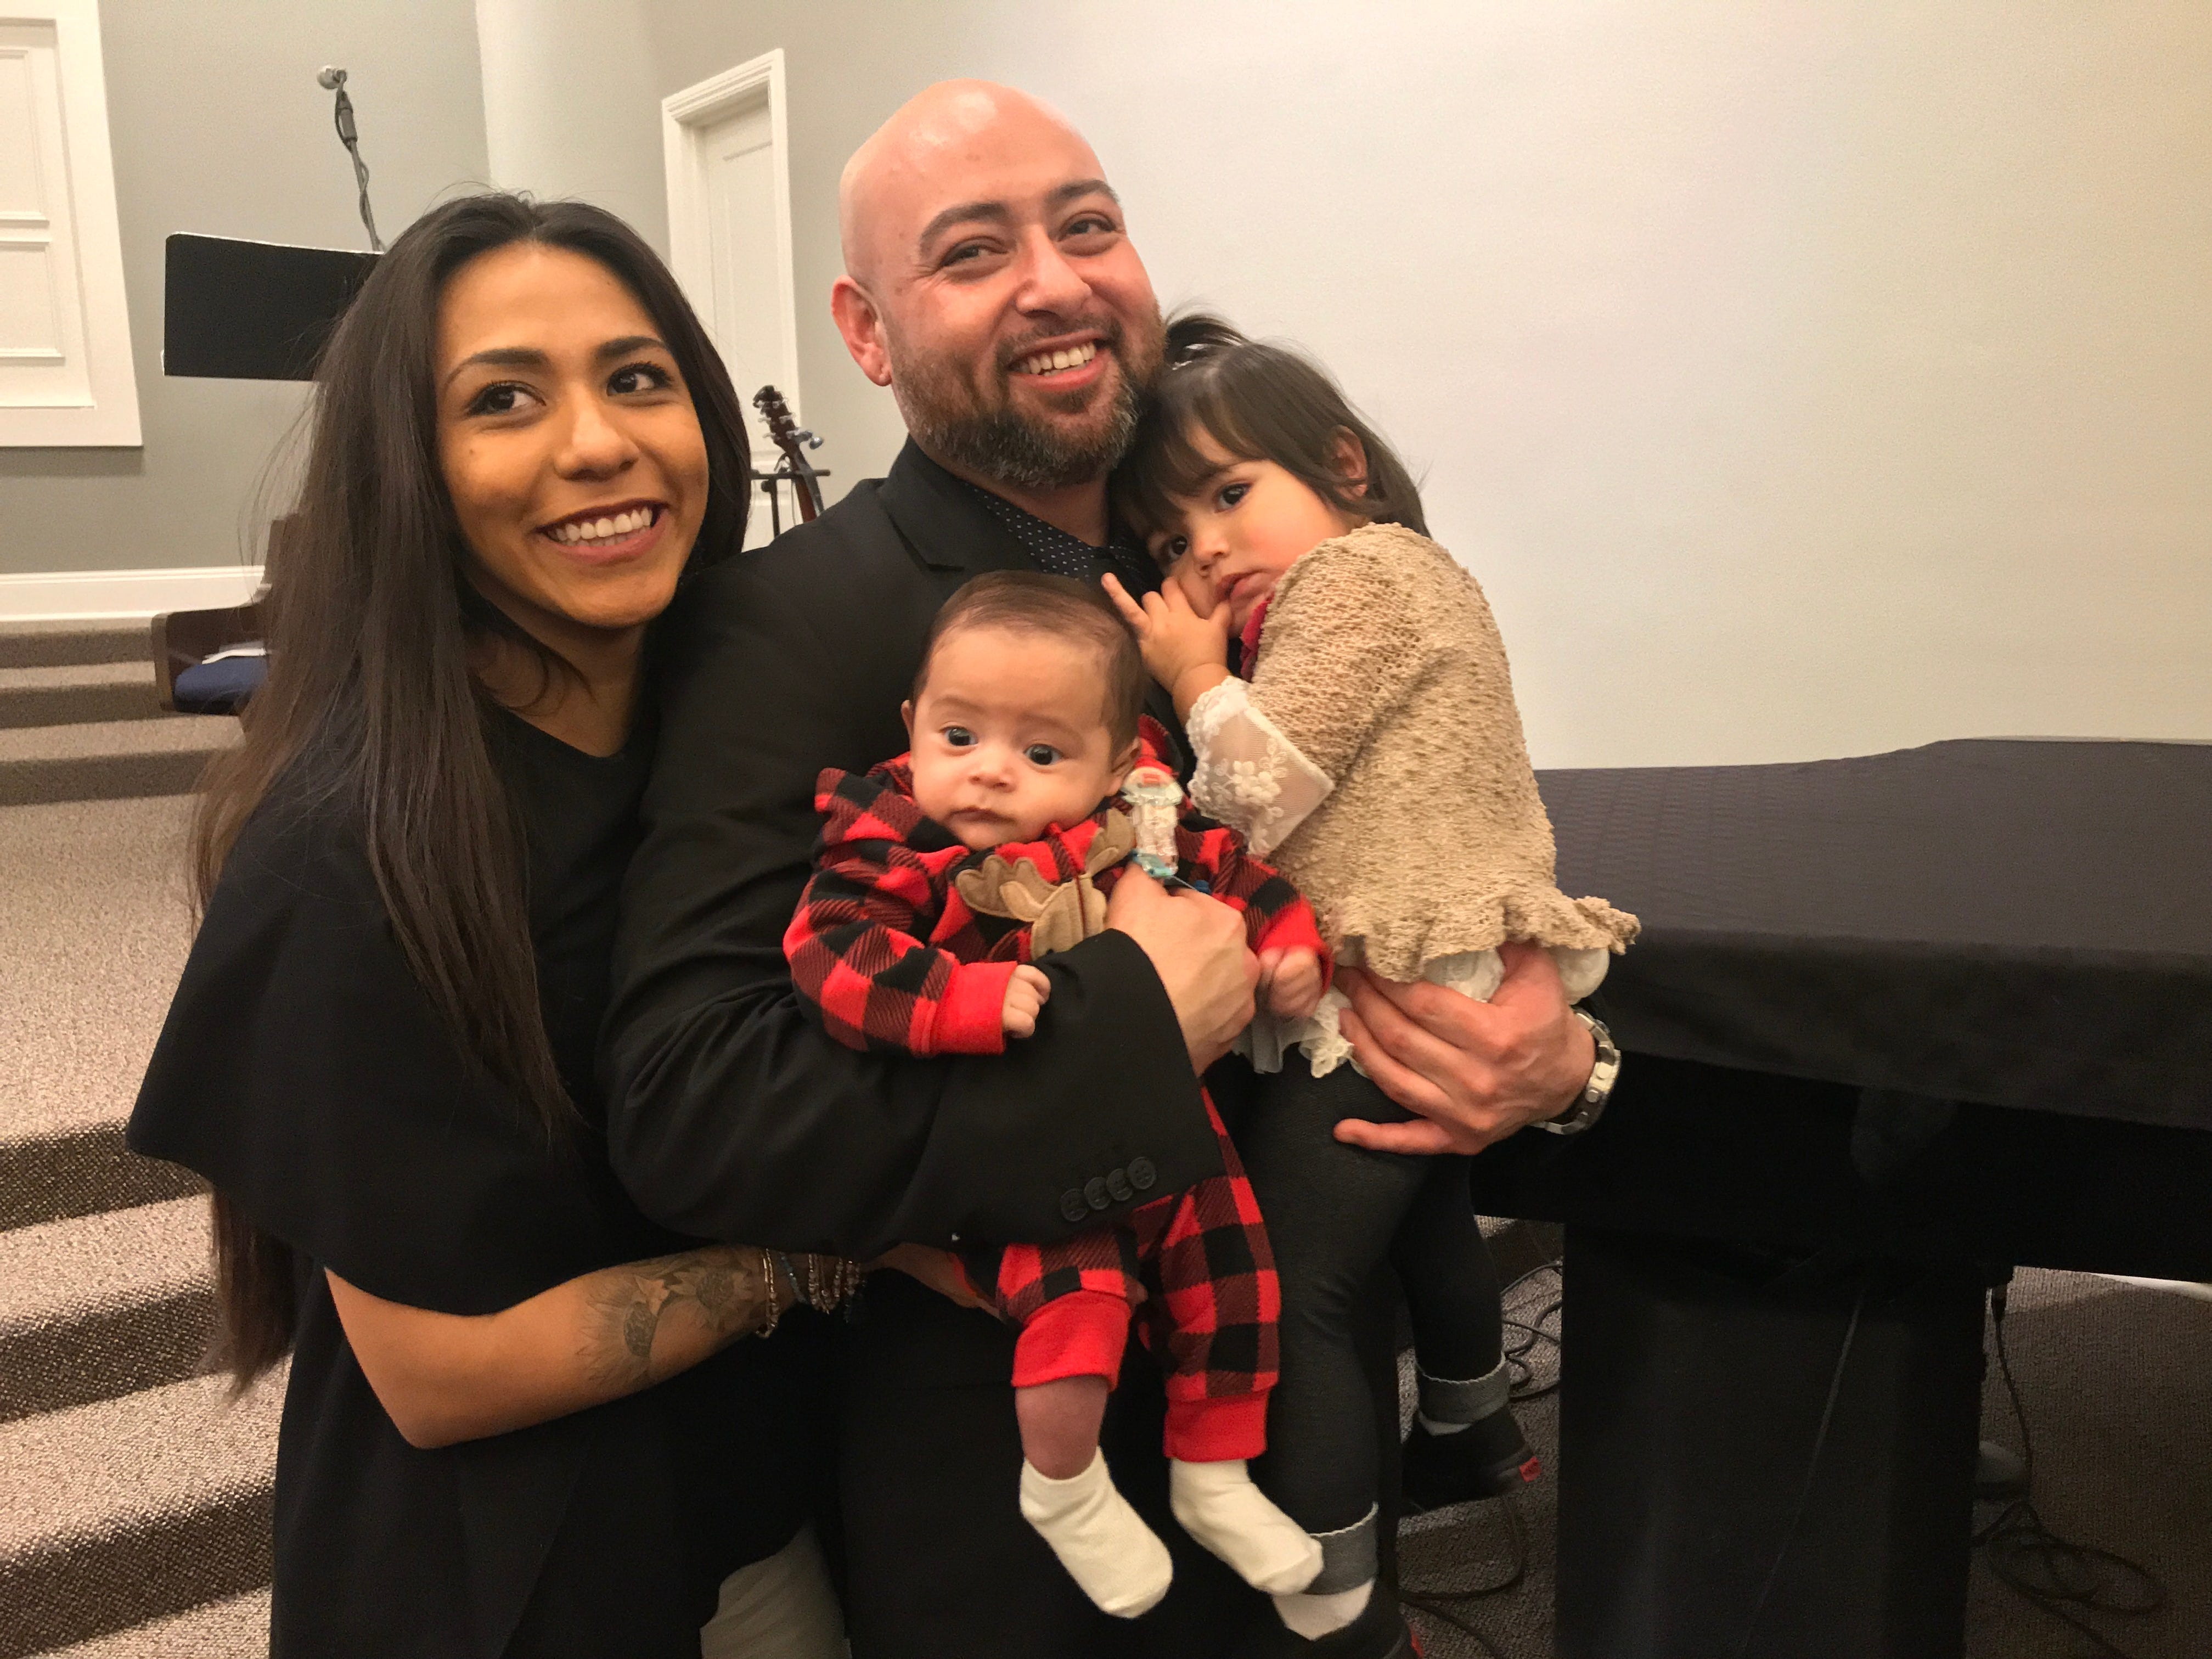 Joe Hernandez poses for photos with his wife, Sarai Hernandez, and two children, Amri and Roman, following his graduation ceremony Jan. 29 at the Ventura County Rescue Mission in Oxnard.